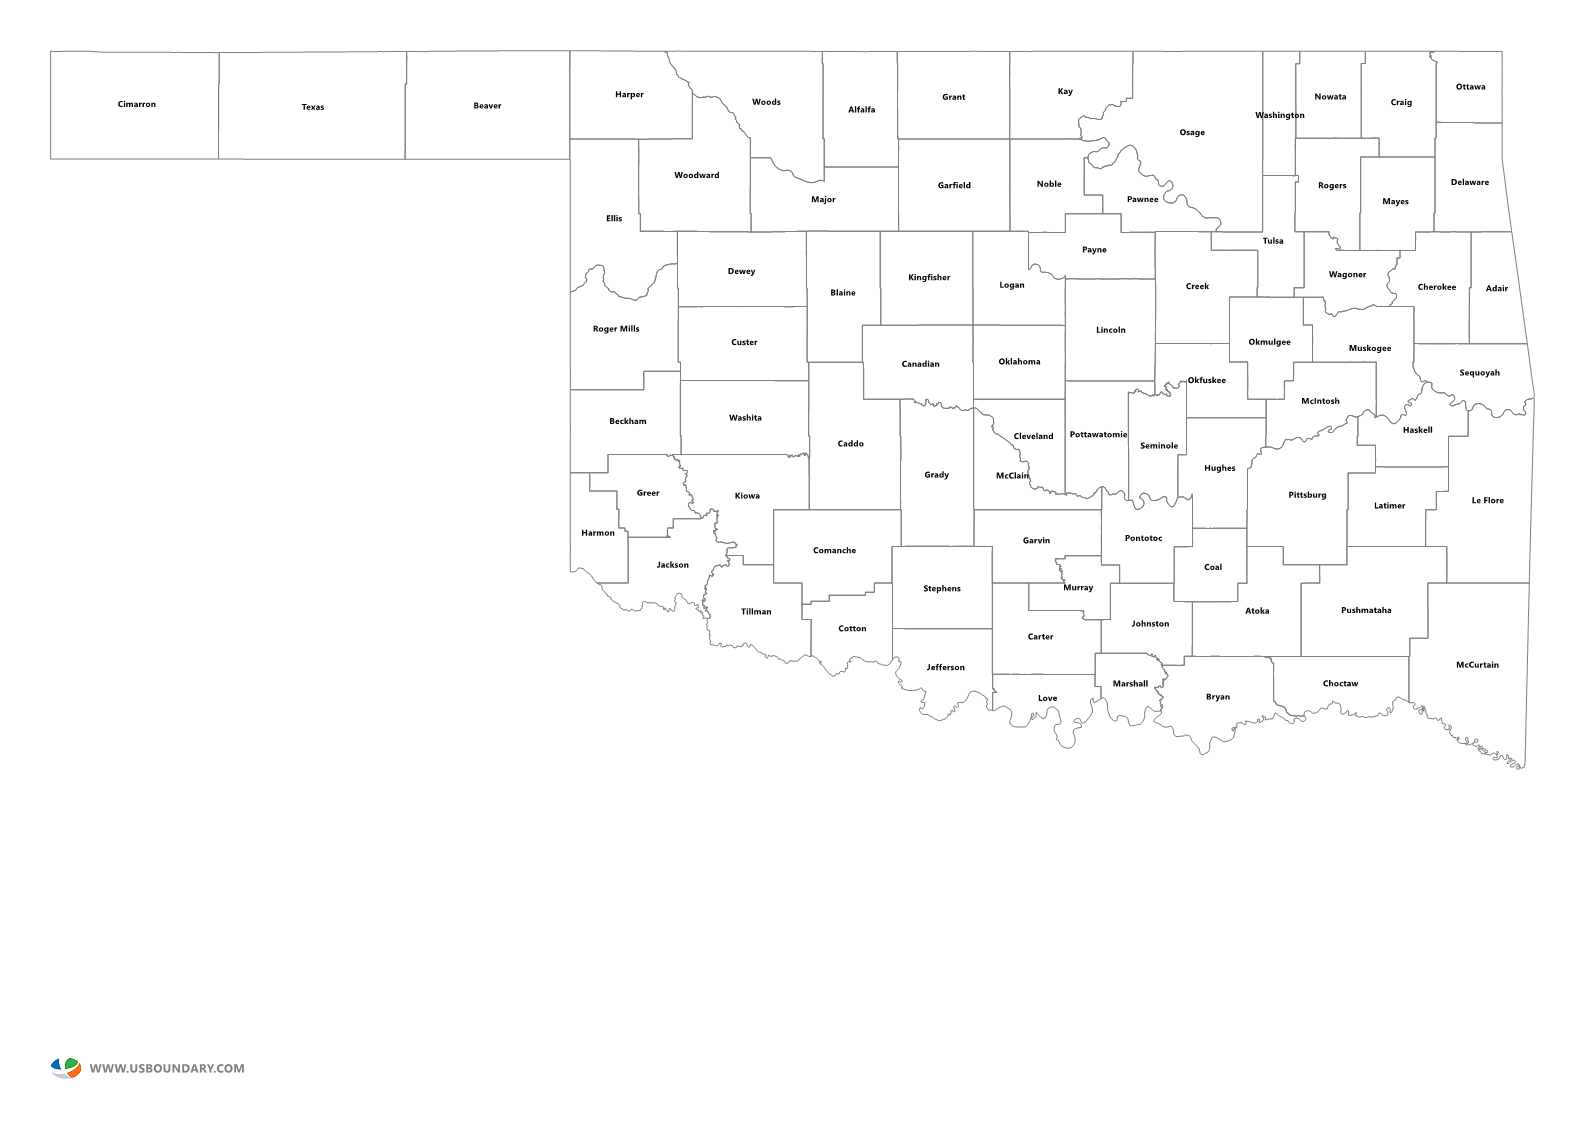 State Counties Maps Download - Oklahoma counties map